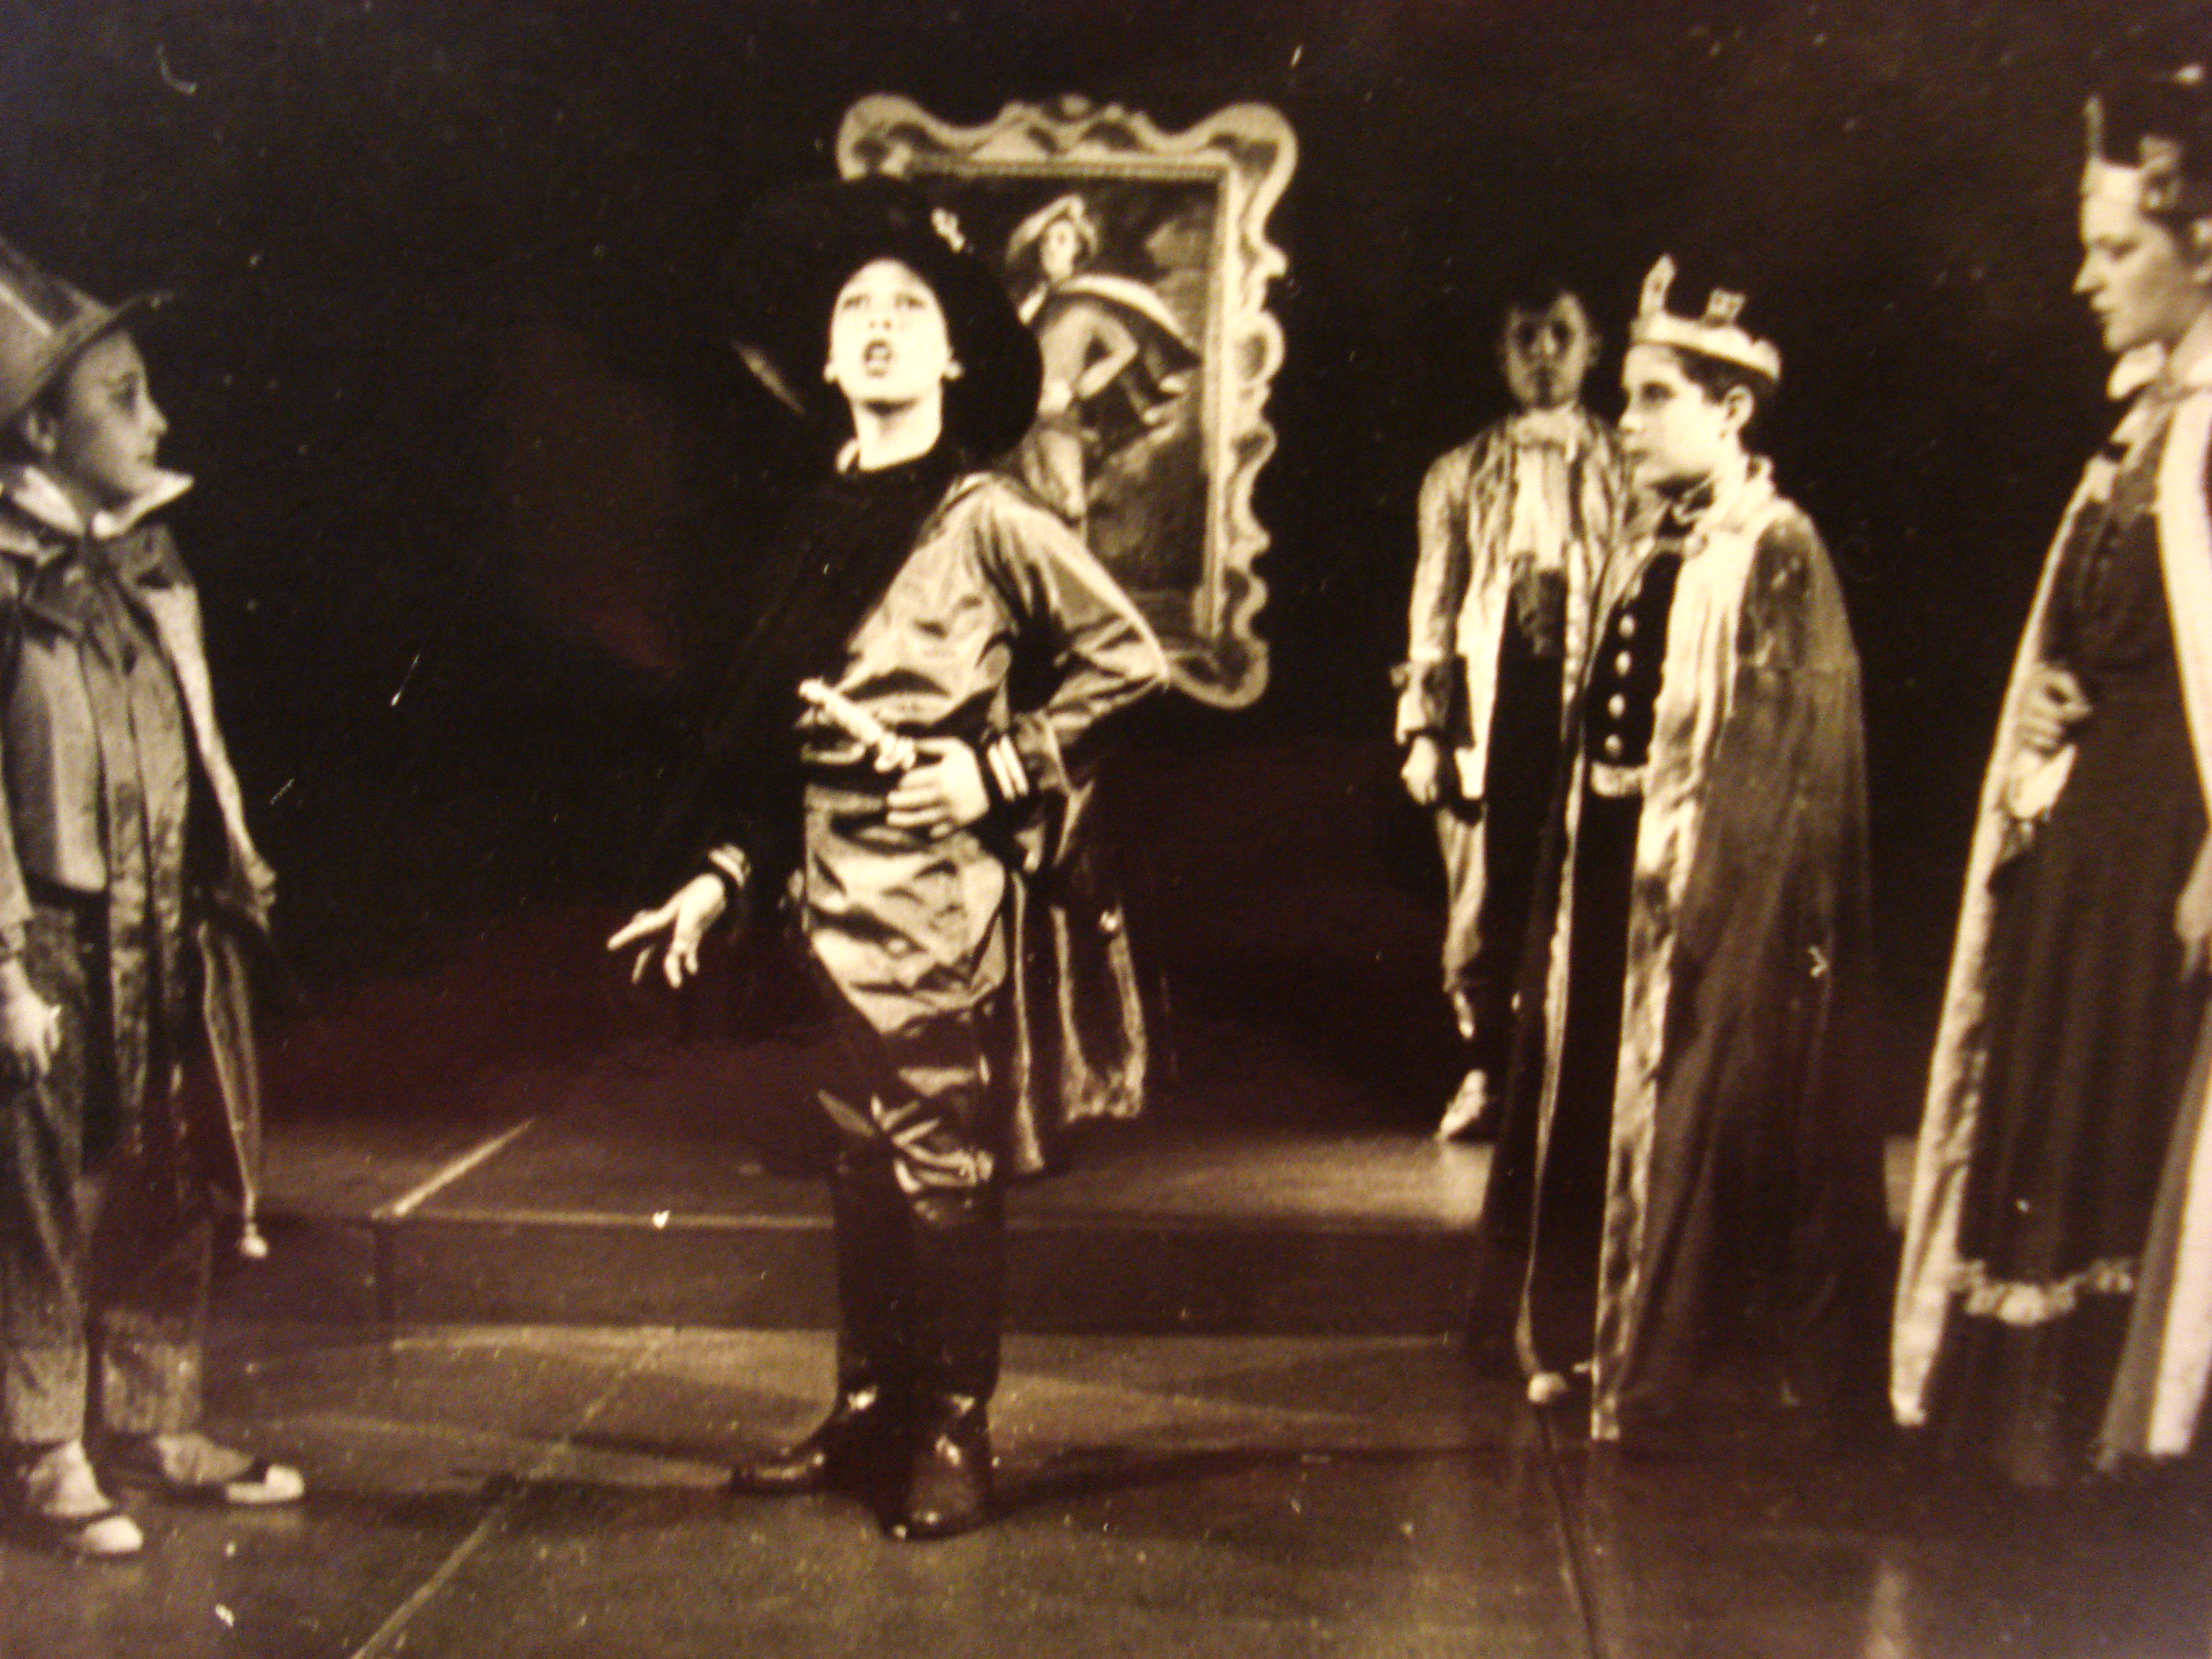 Eugene Pressman as The Prince